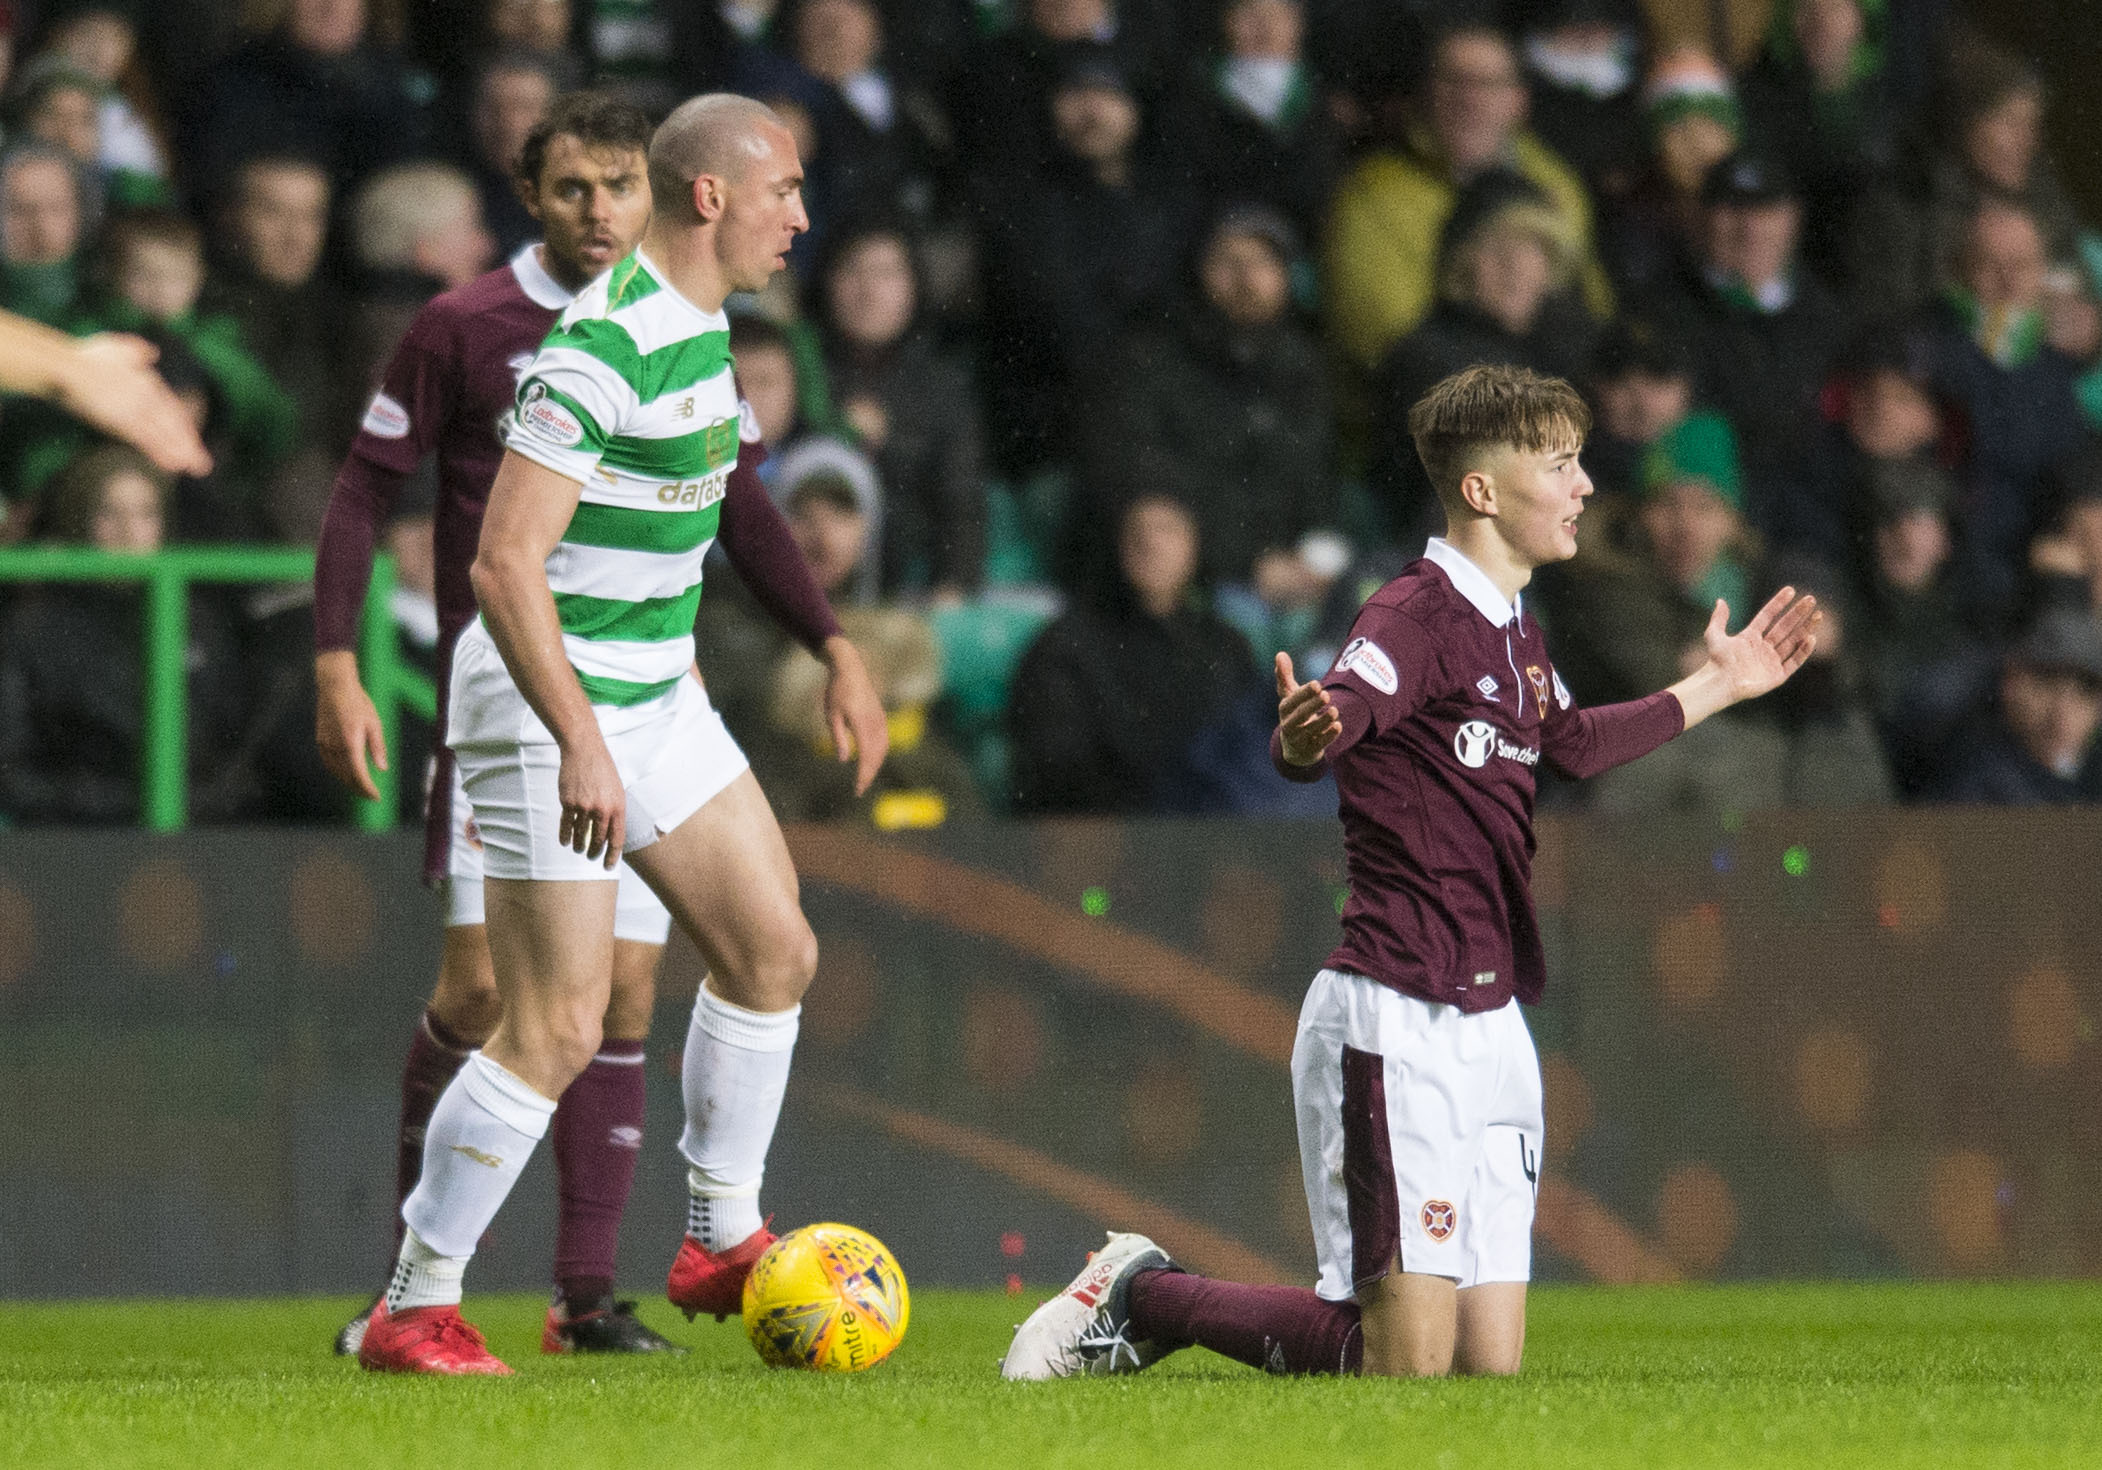 Celtic captain Scott Brown, left, and Hearts midfielder Harry Cochrane at Parkhead on Wednesday night.